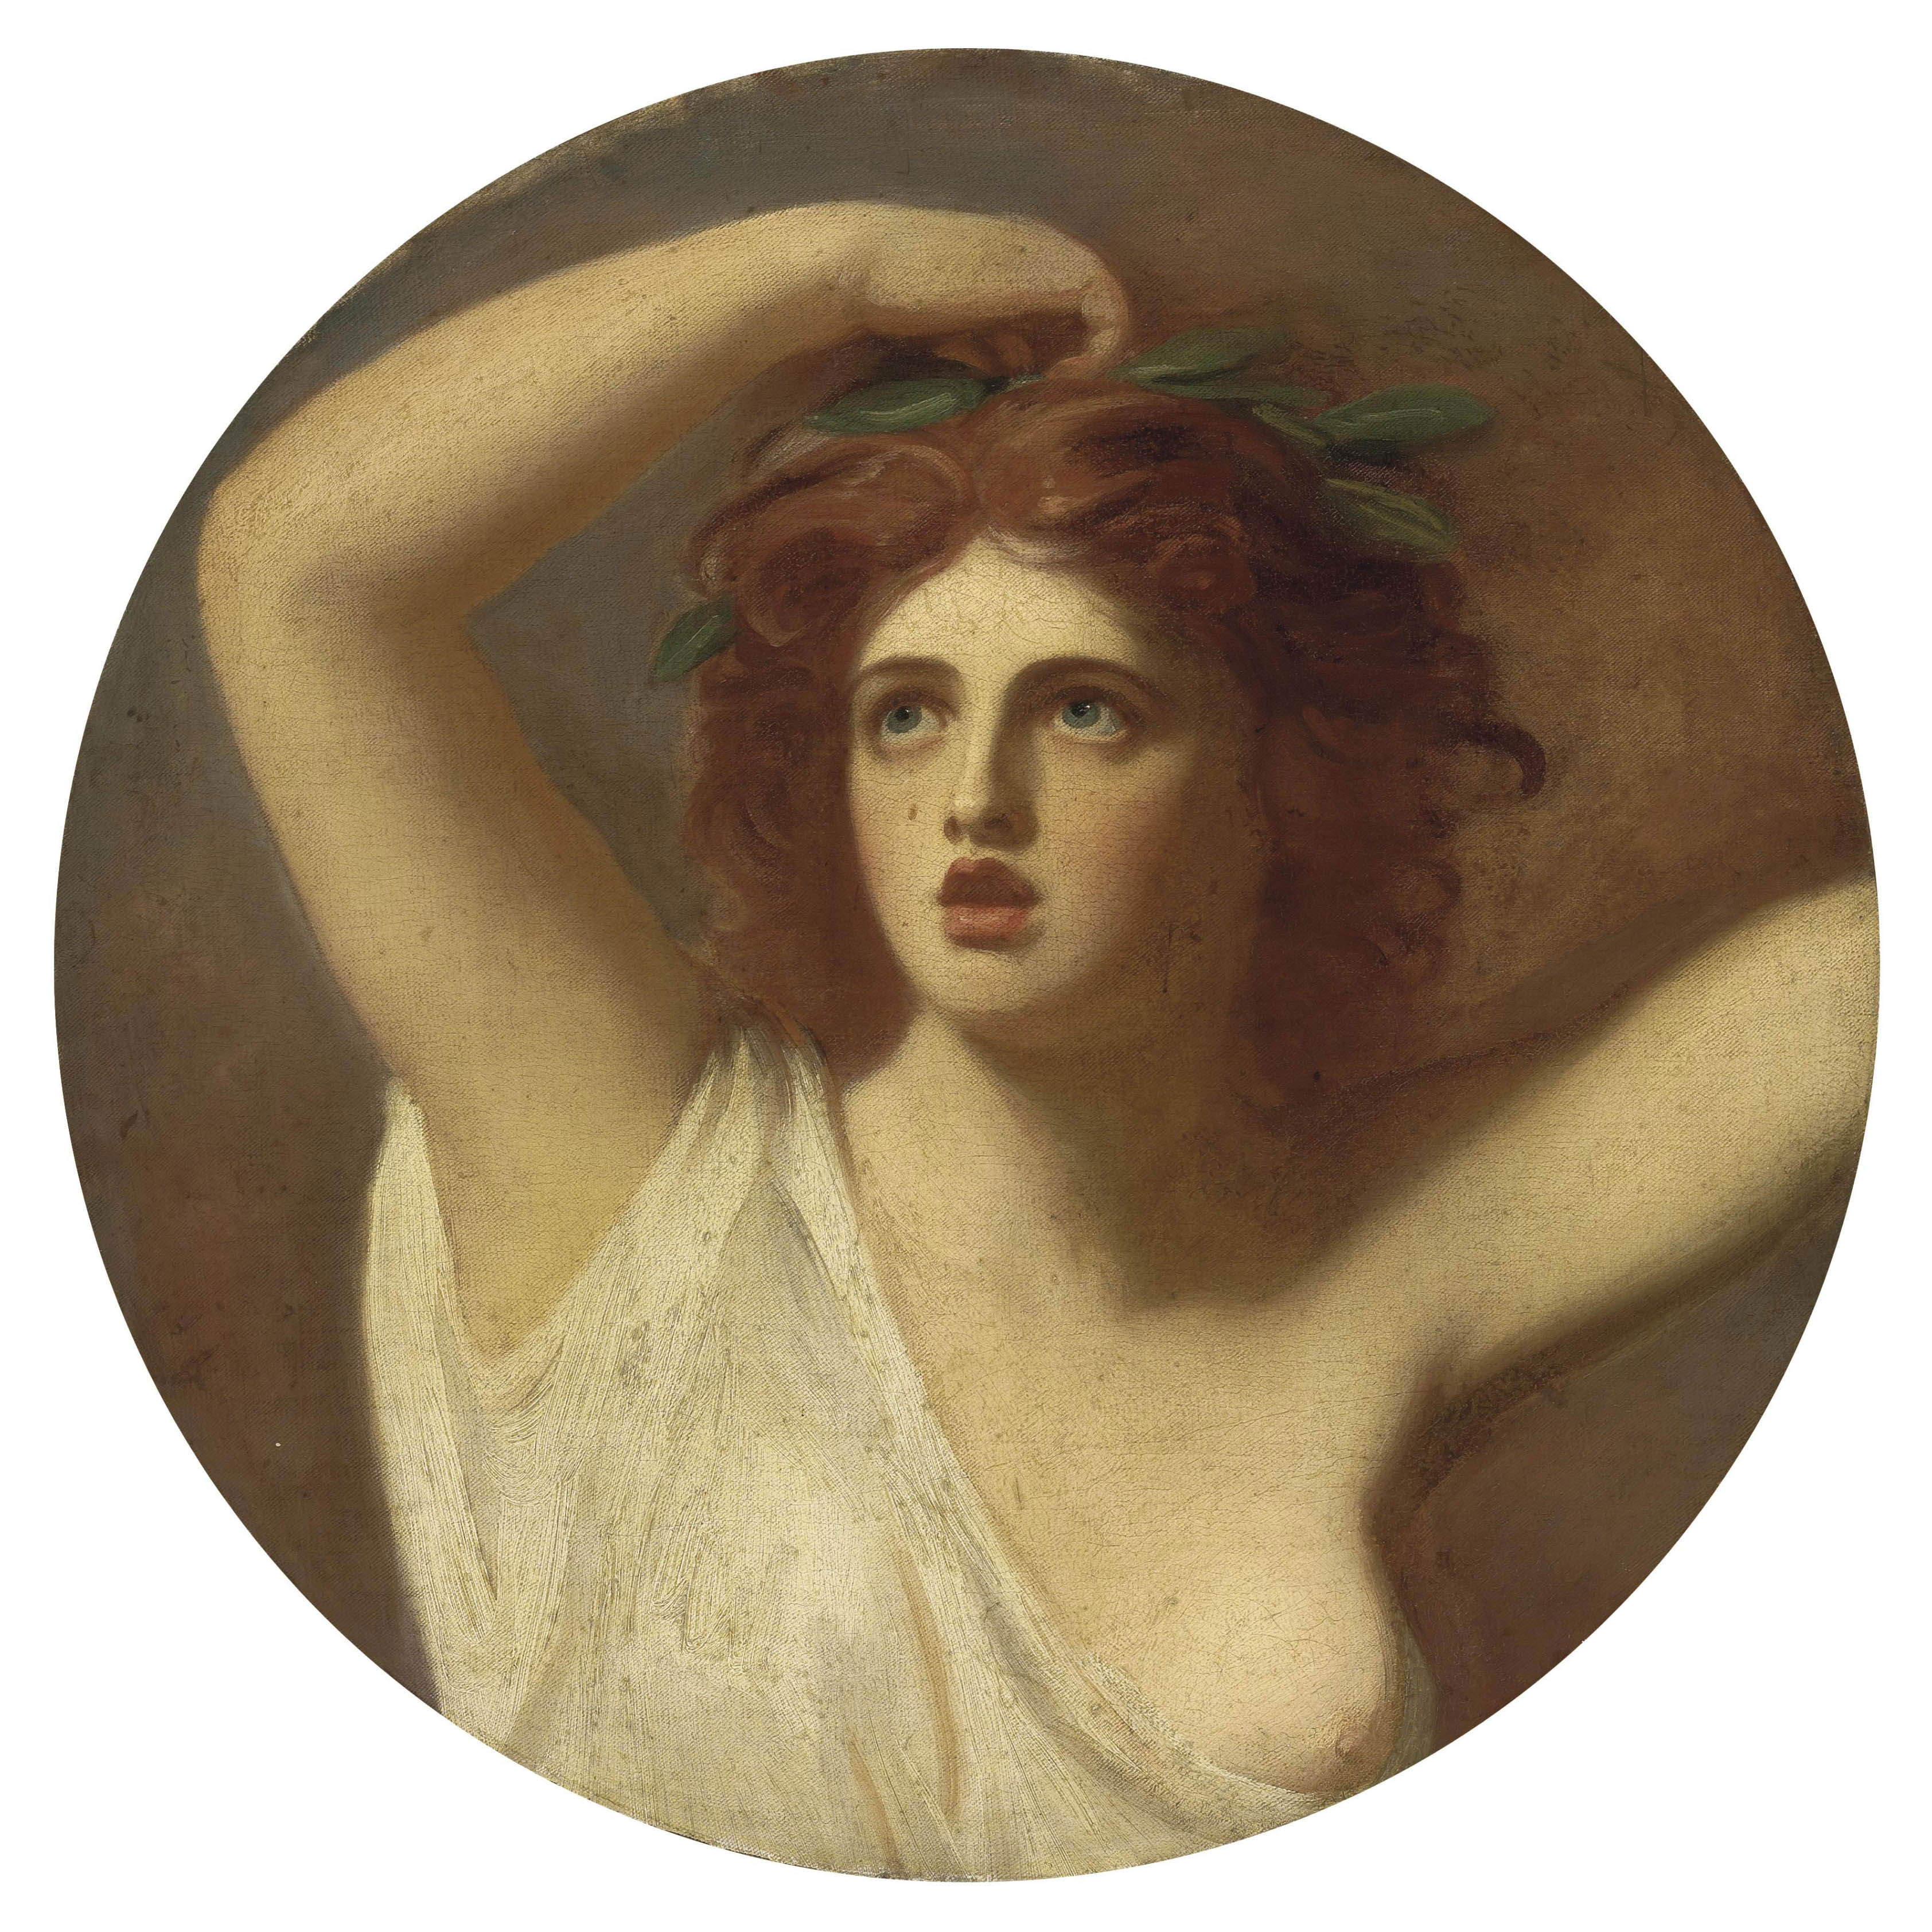 Portrait of Lady Emma Hamilton, as Cassandra, half length, in a white robe, a laurel wreath crowning her head